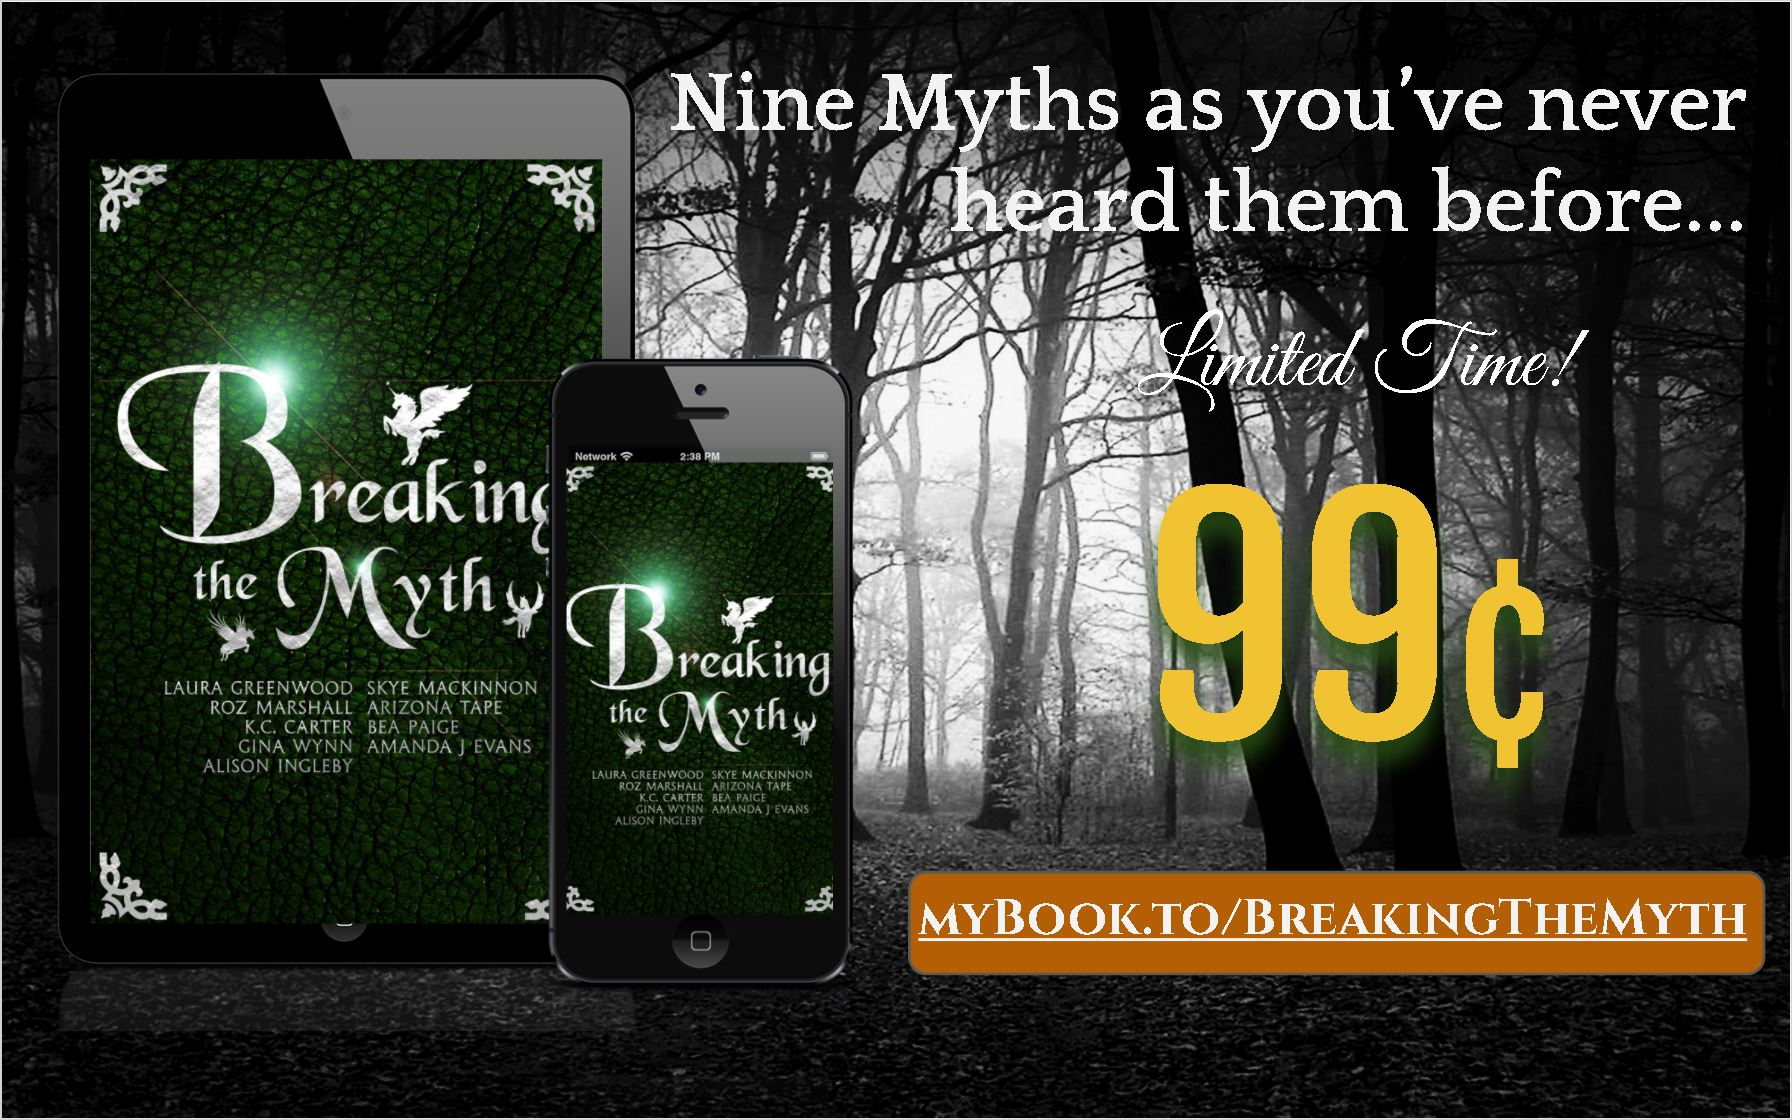 Breaking the Myth launch graphic